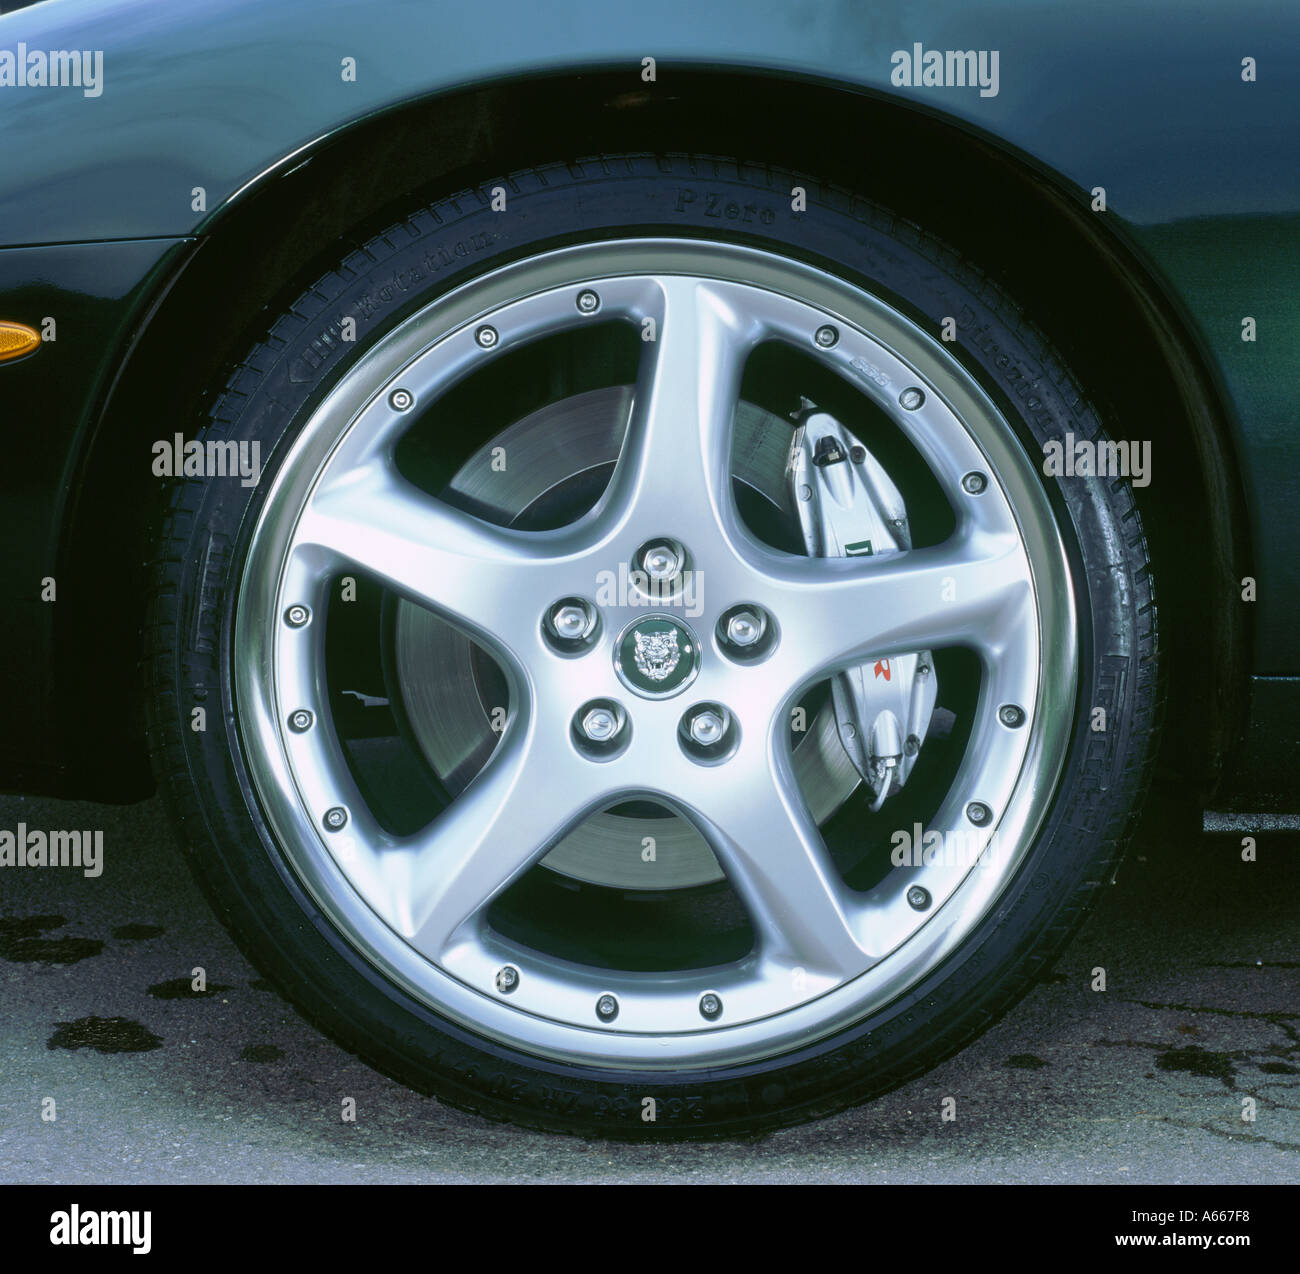 2002 Jaguar XKR convertible alloy wheel - Stock Image